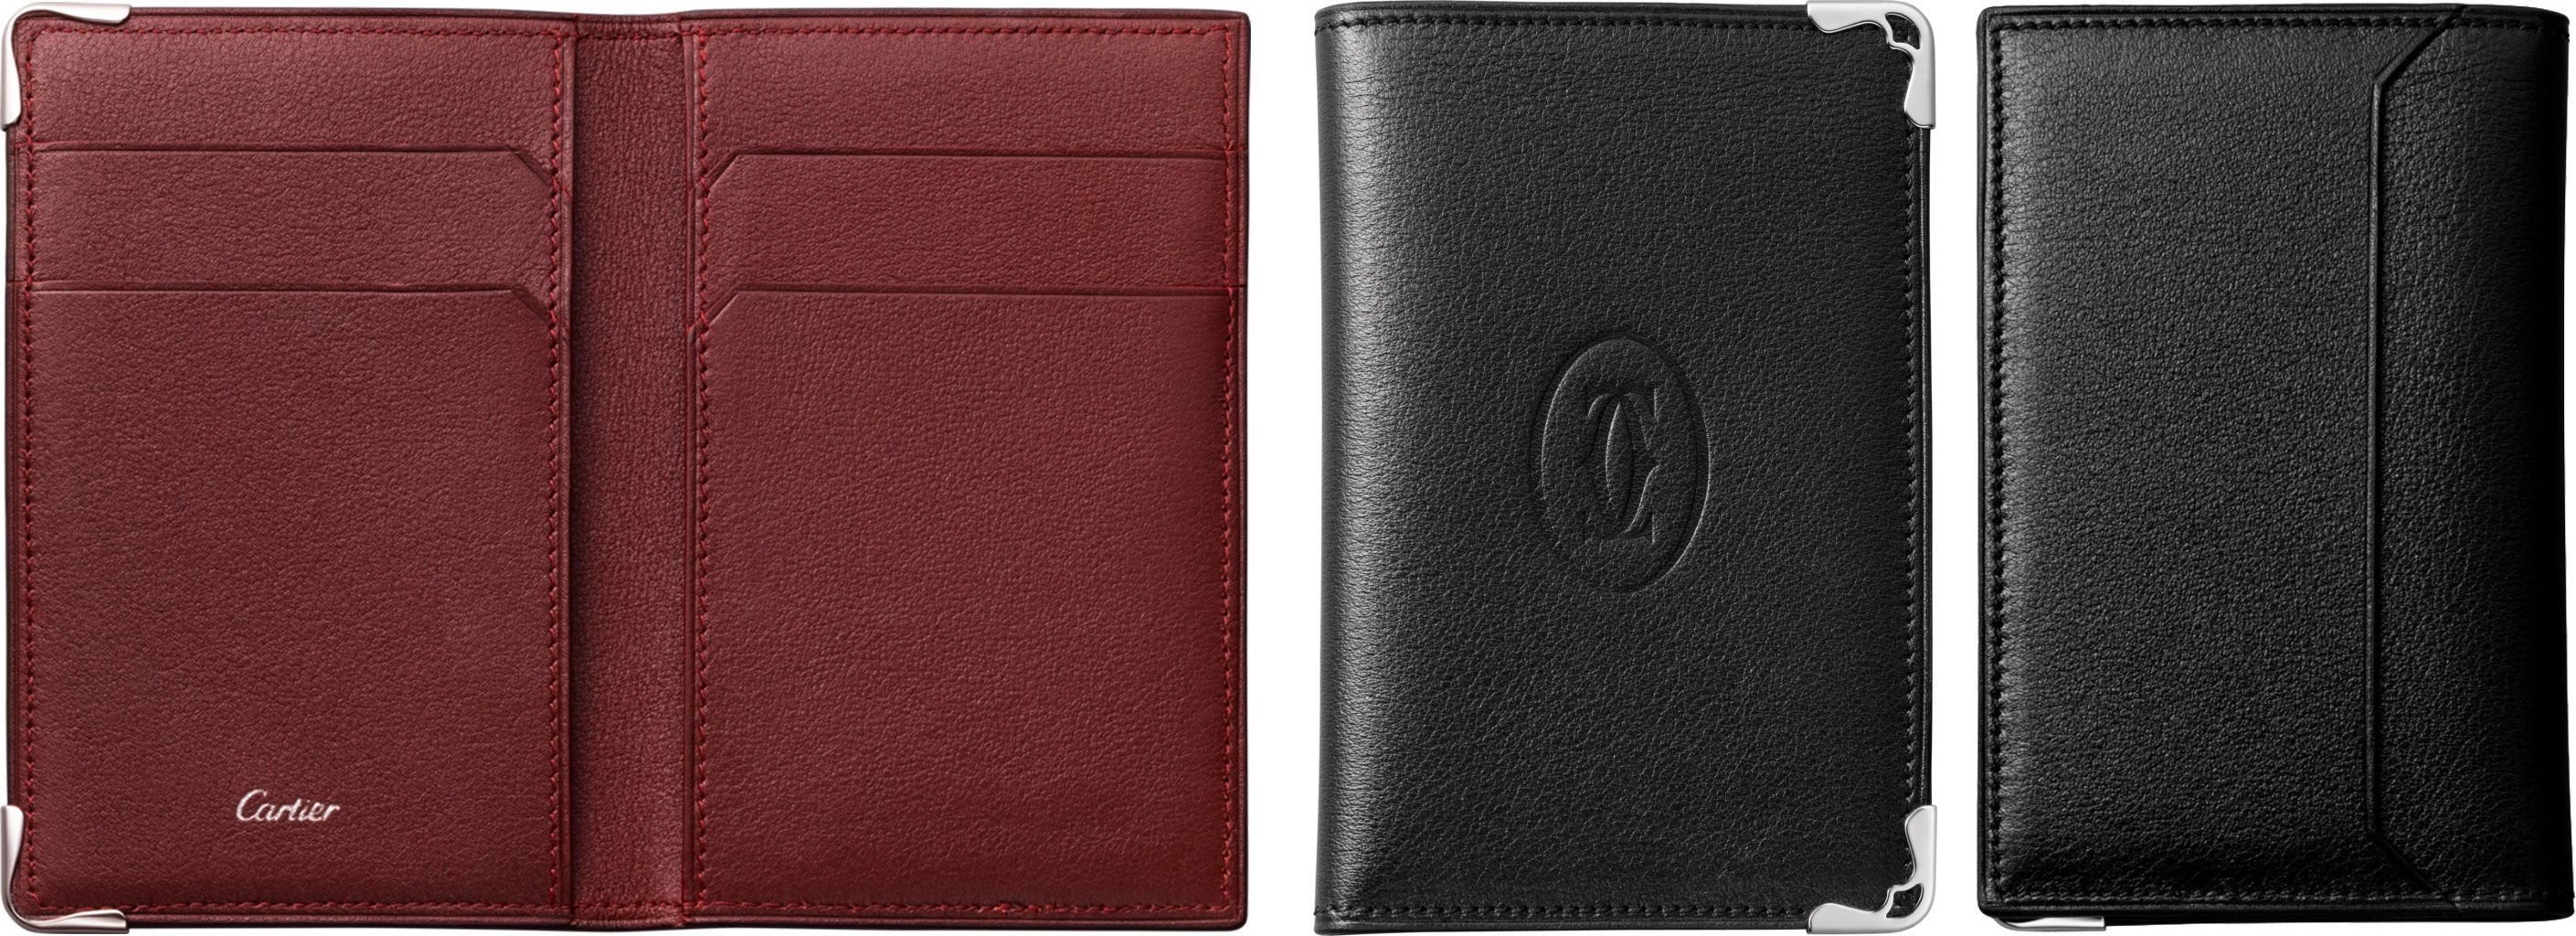 cartier cardholder Mens card holder, Small leather goods